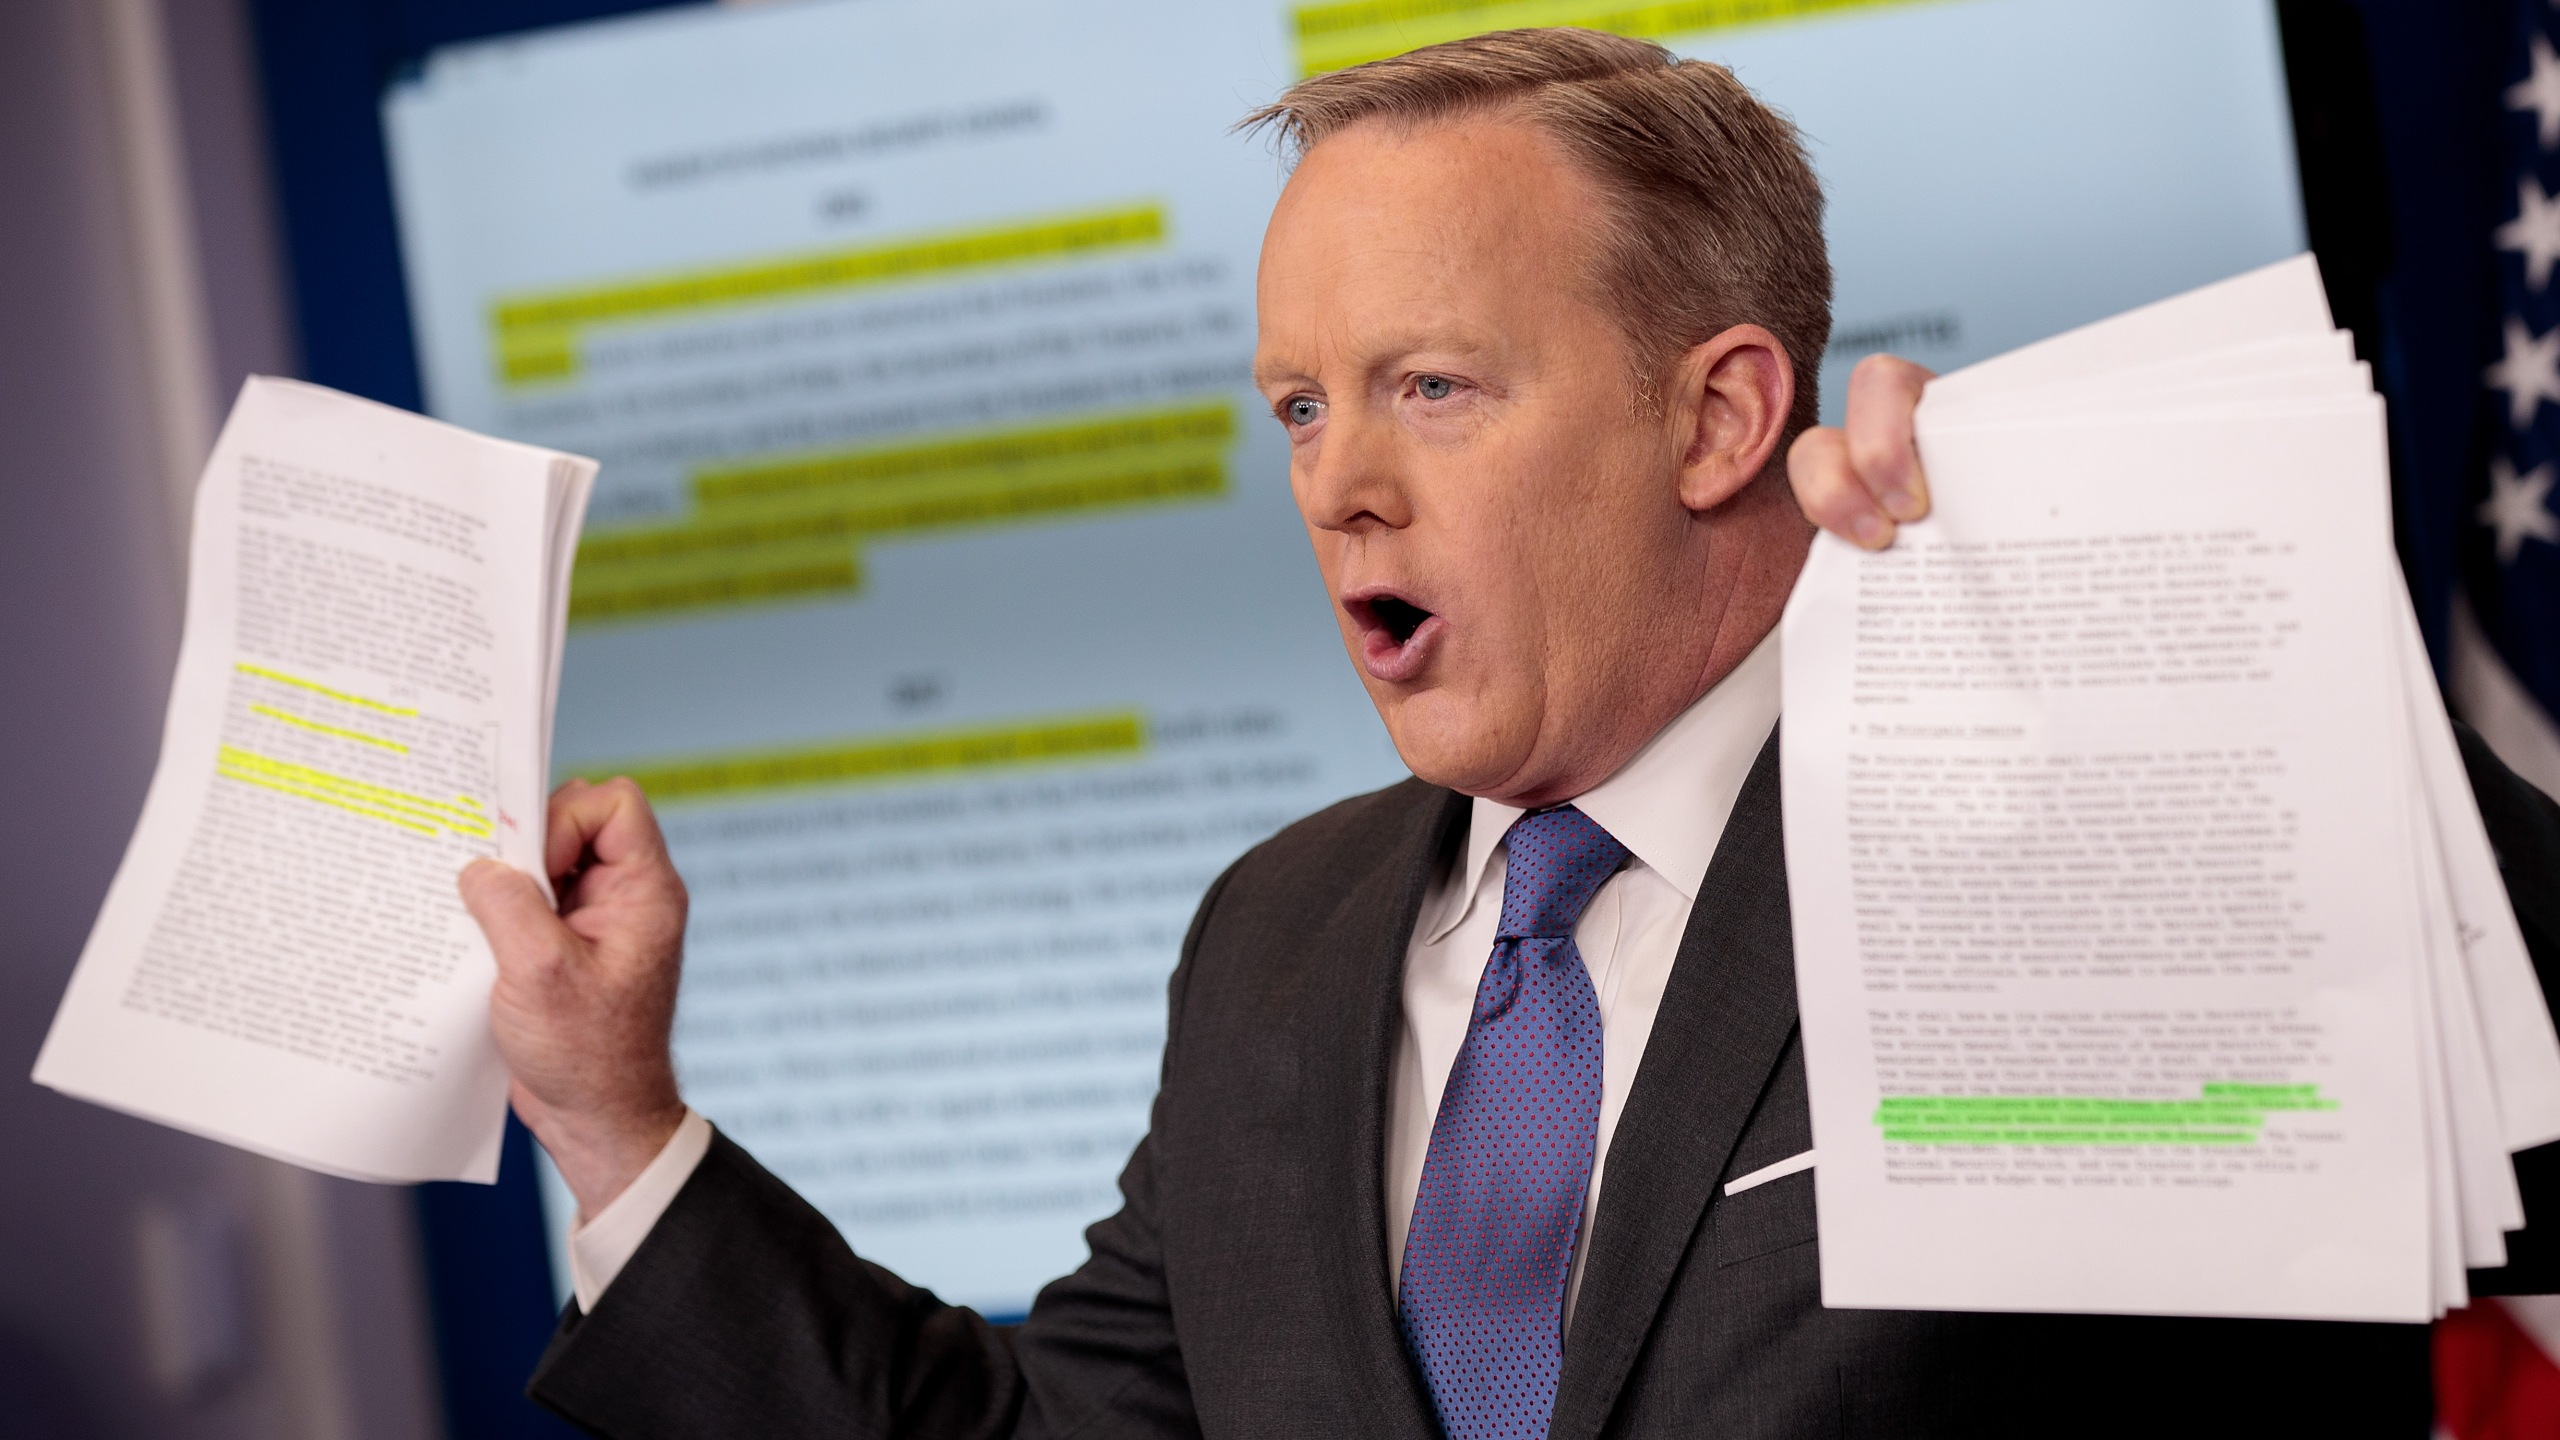 Sean Spicer holds up paperwork highlighting and comparing language about the National Security Council from the Trump administration and previous administrations during the daily press briefing at the White House, on Jan. 30, 2017 in Washington, D.C. (Credit: Drew Angerer/Getty Images)